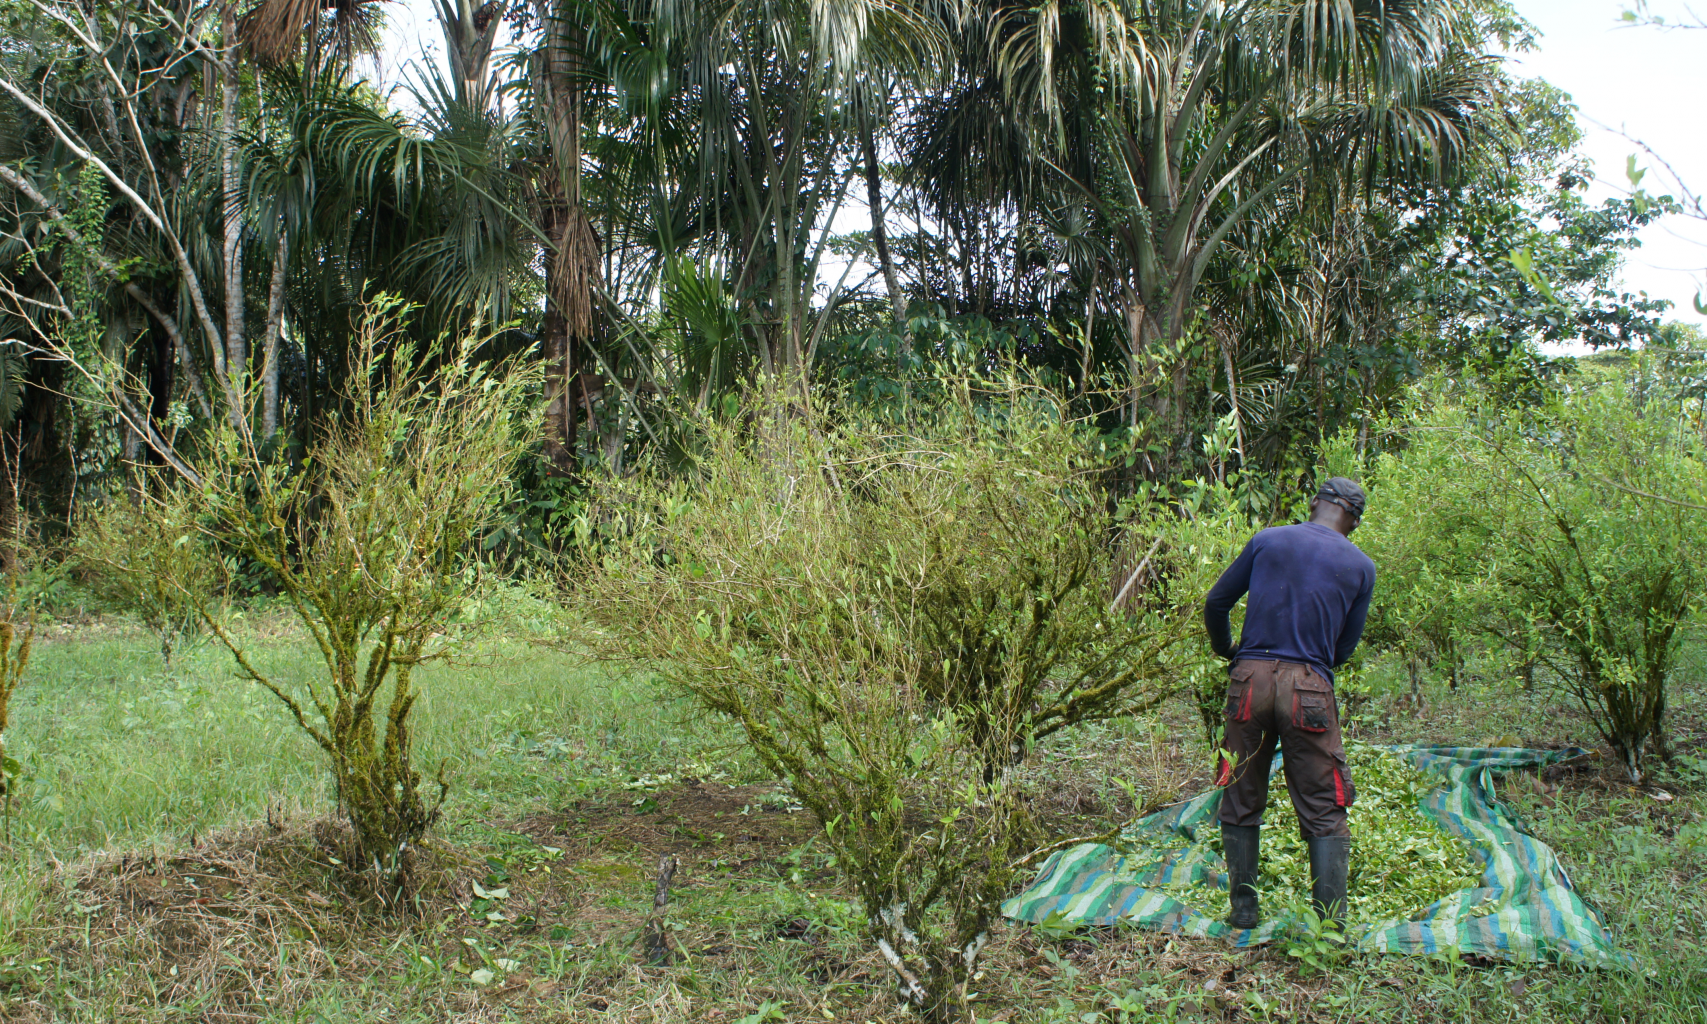 Coca harvest in Puerto Asis, Colombia. Photo by Frances Thomson.